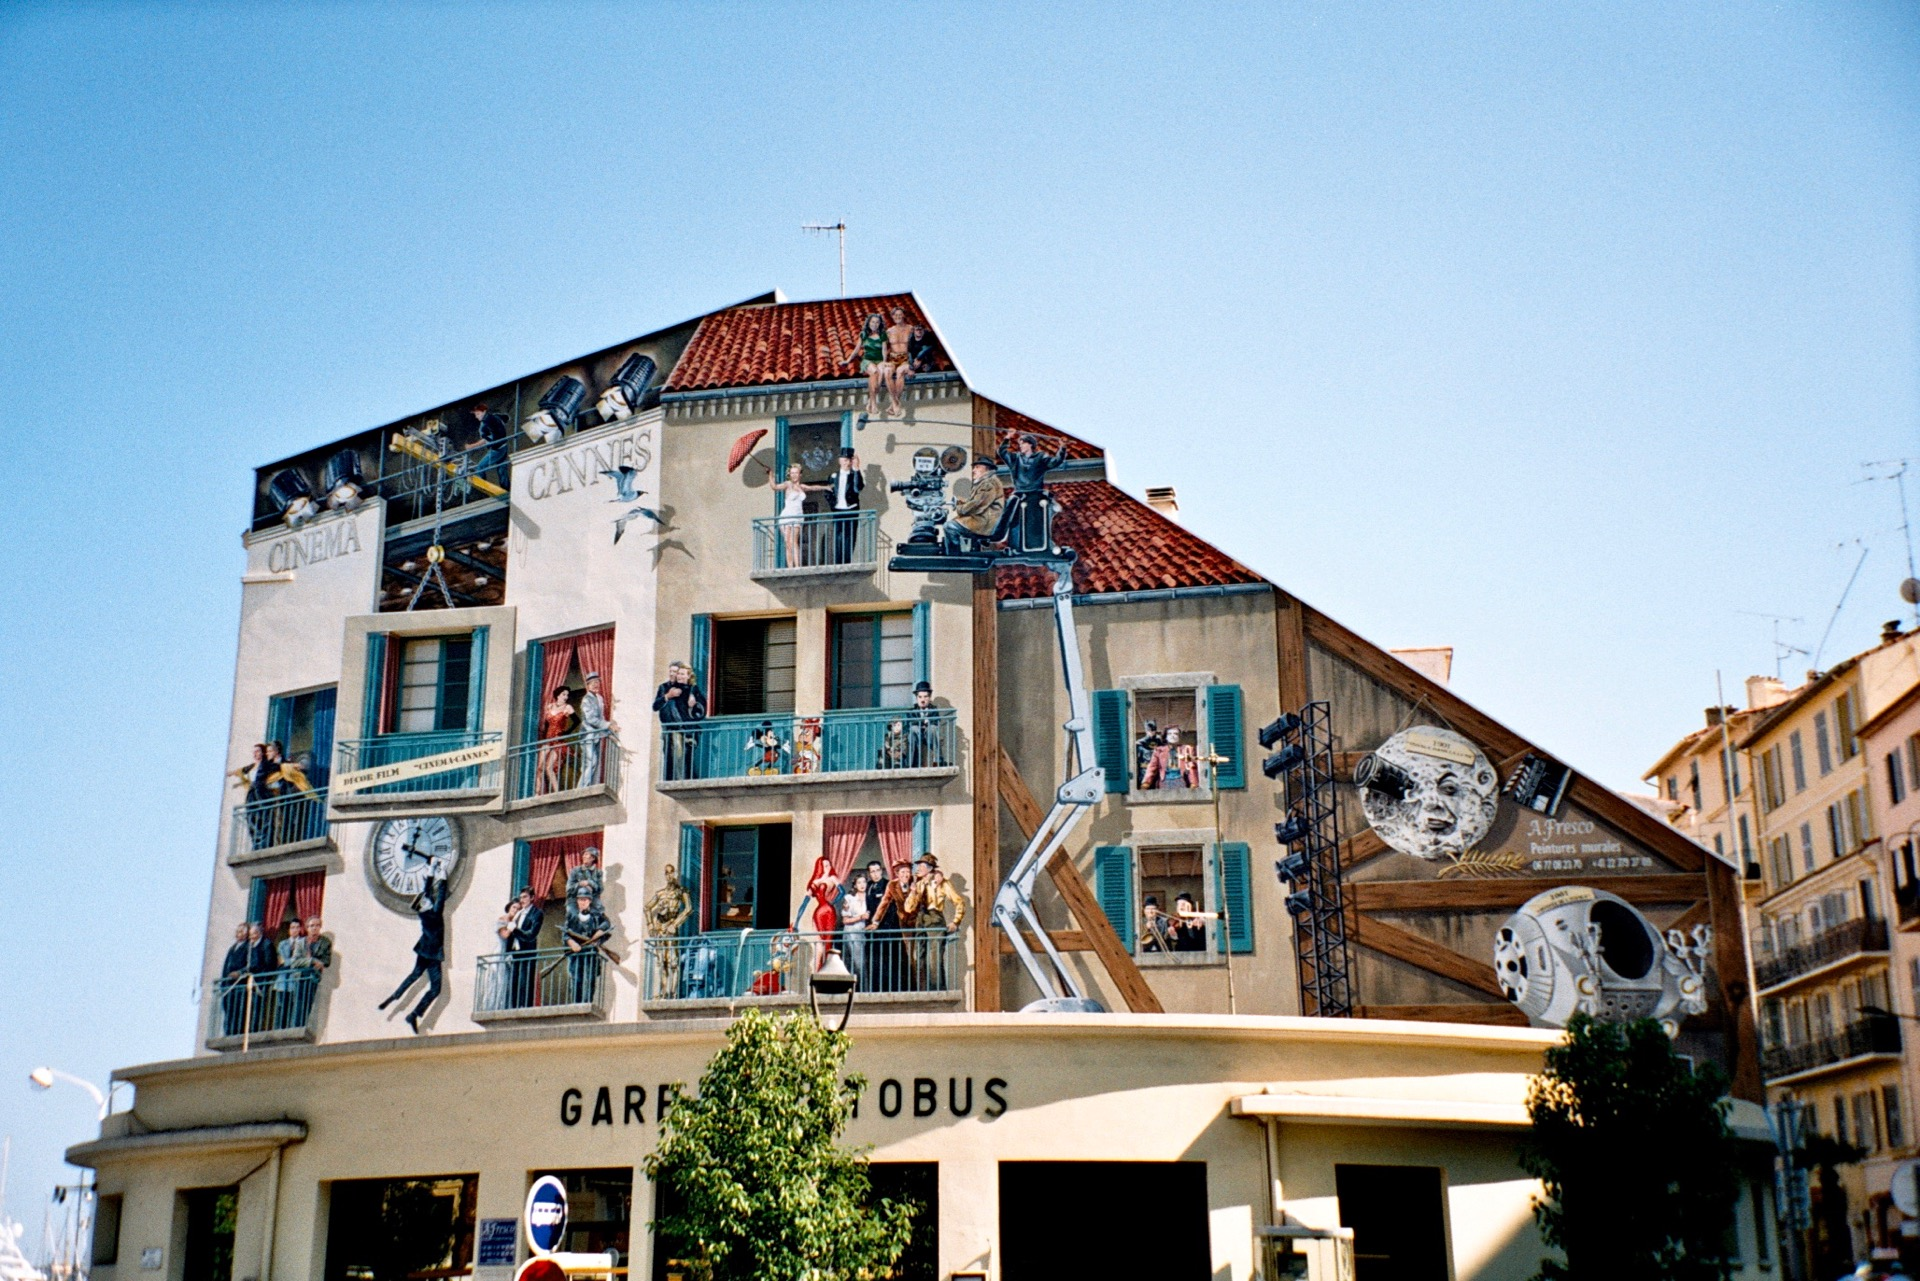 Bemaltes Haus am Busbahnhof in Cannes, 2006  -  Painted House at the Central Bus Station in Cannes (France) 2006